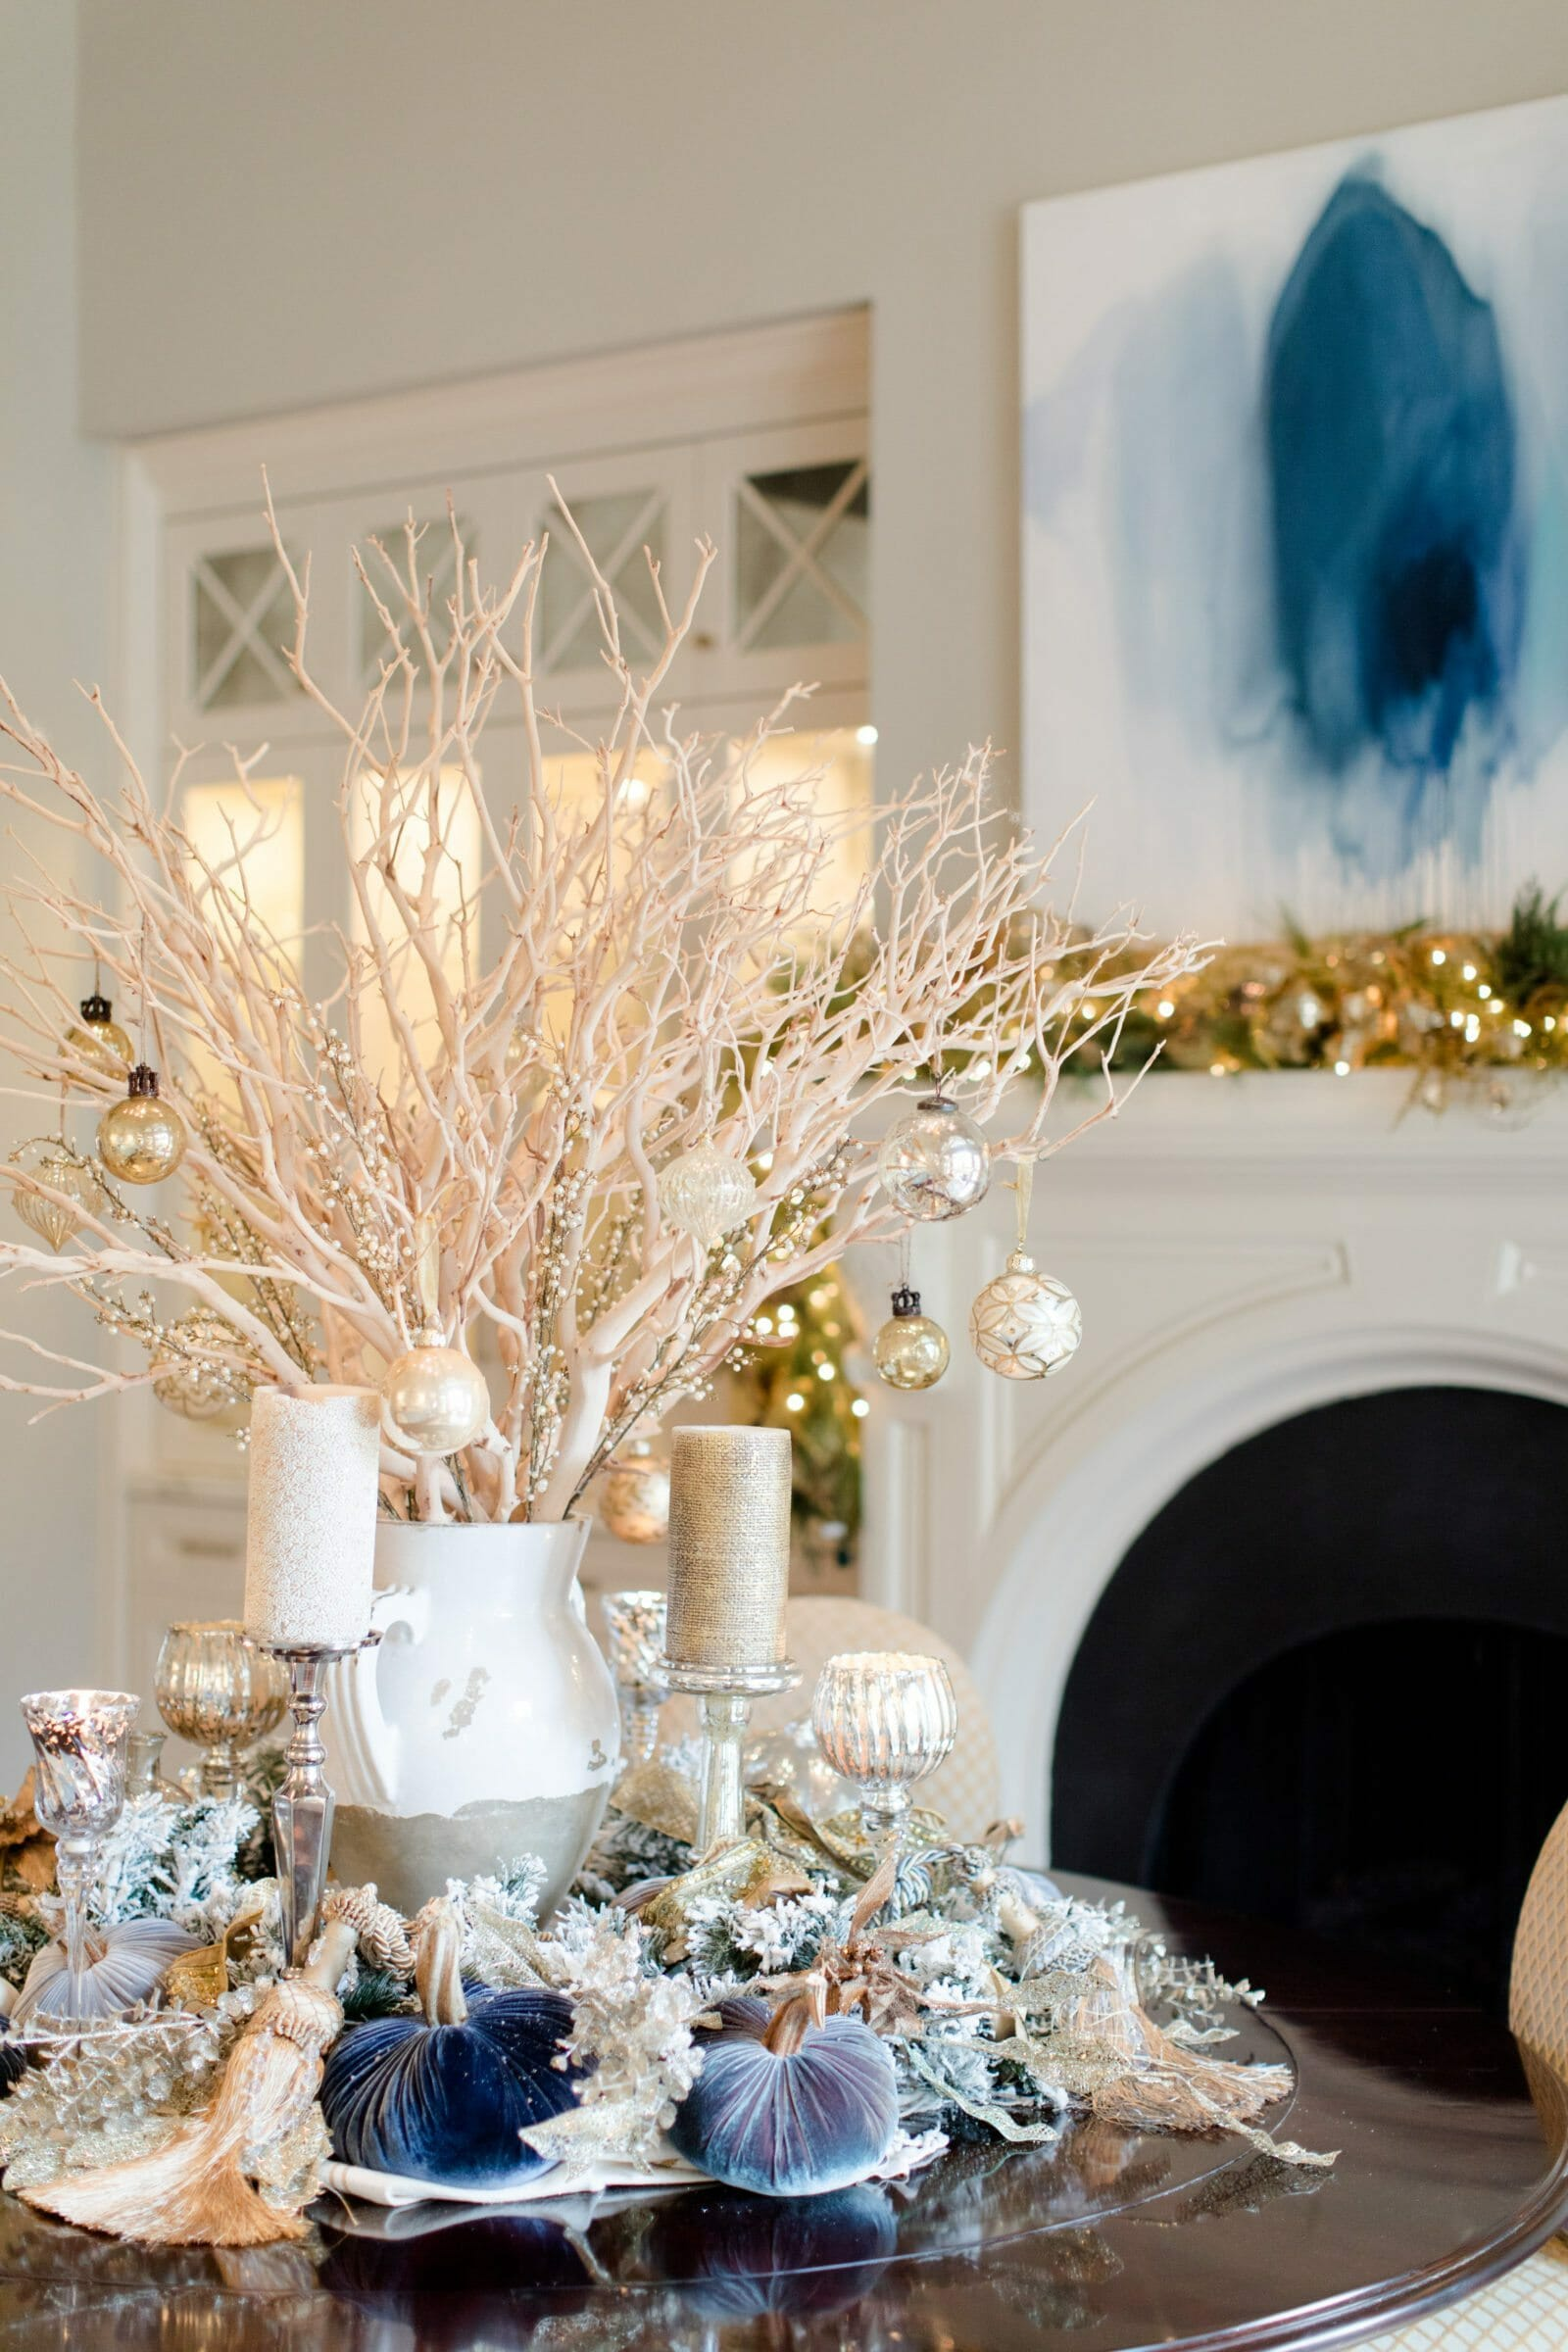 How to add winter decor to a coastal design decorilla - Affordable interior design seattle ...